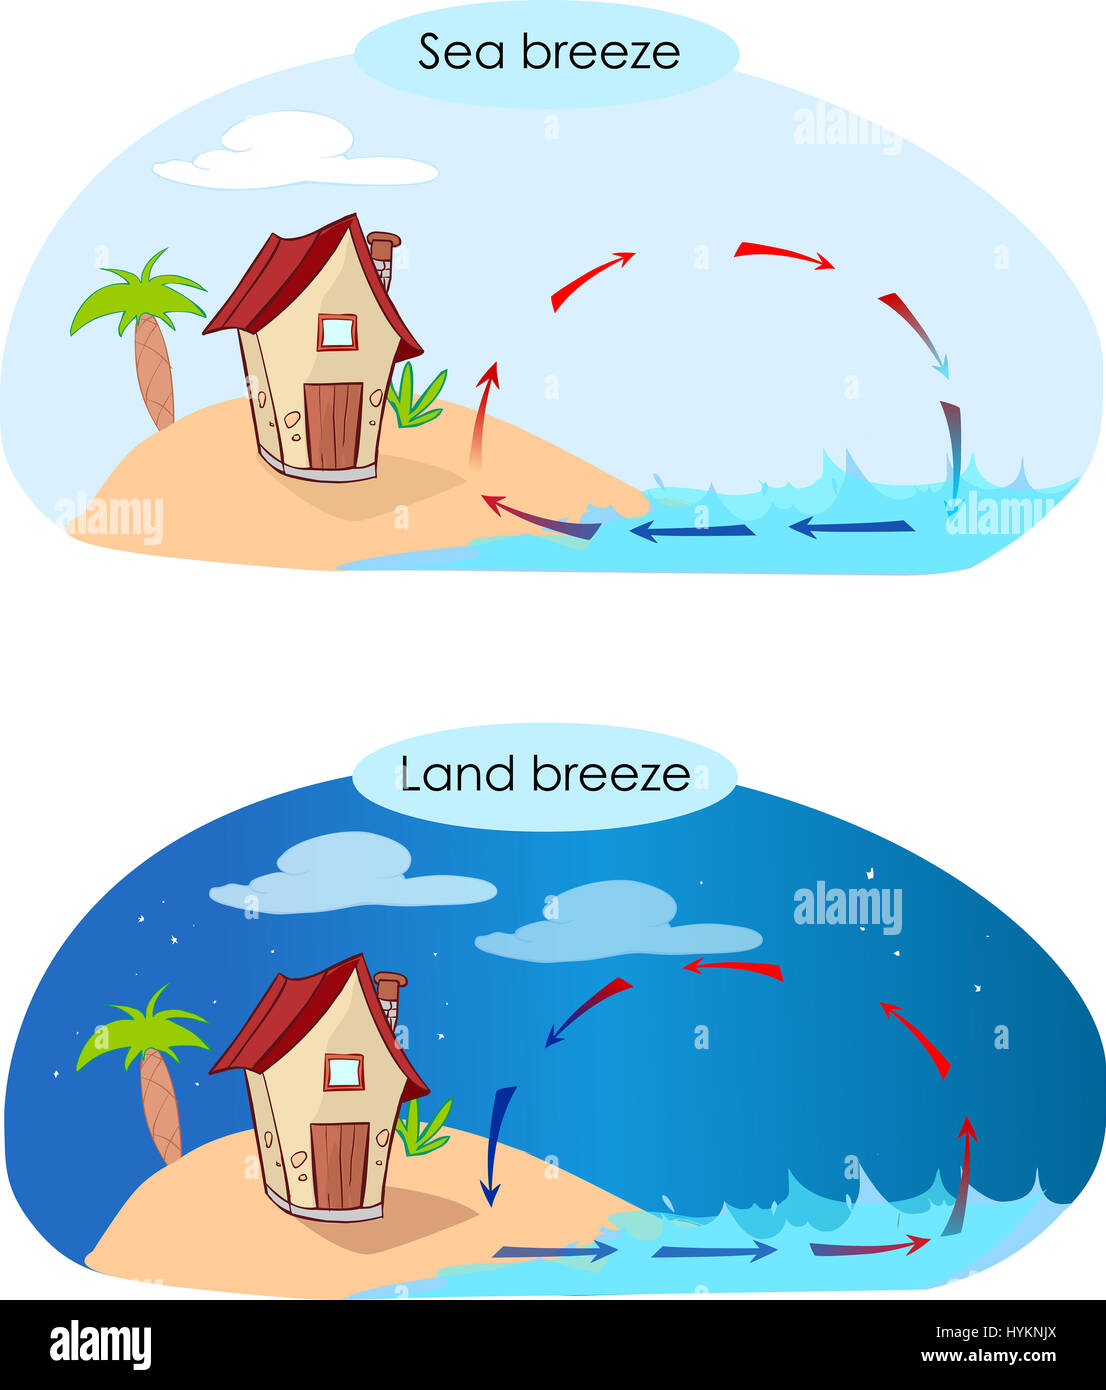 Vector illustratiion of a sea breeze and land breeze stock photo vector illustratiion of a sea breeze and land breeze pooptronica